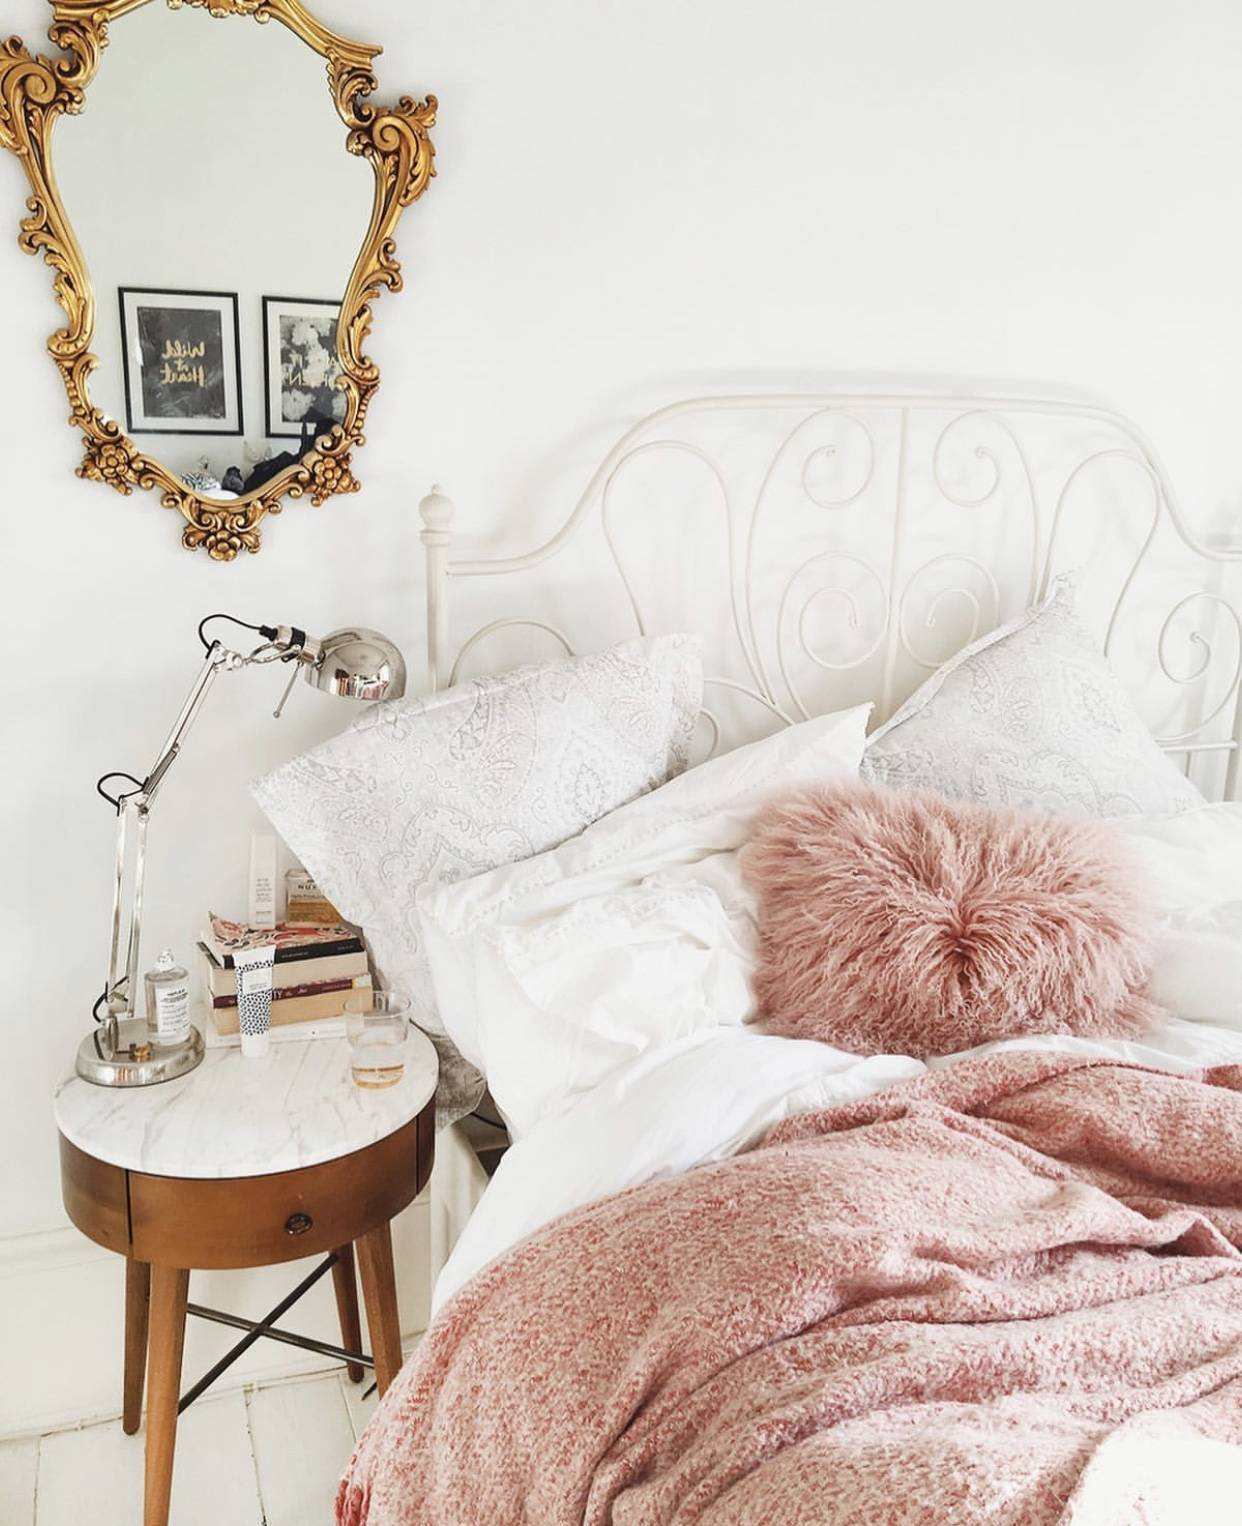 Vsco Room Ideas How To Create A Cute Vsco Room The Pink